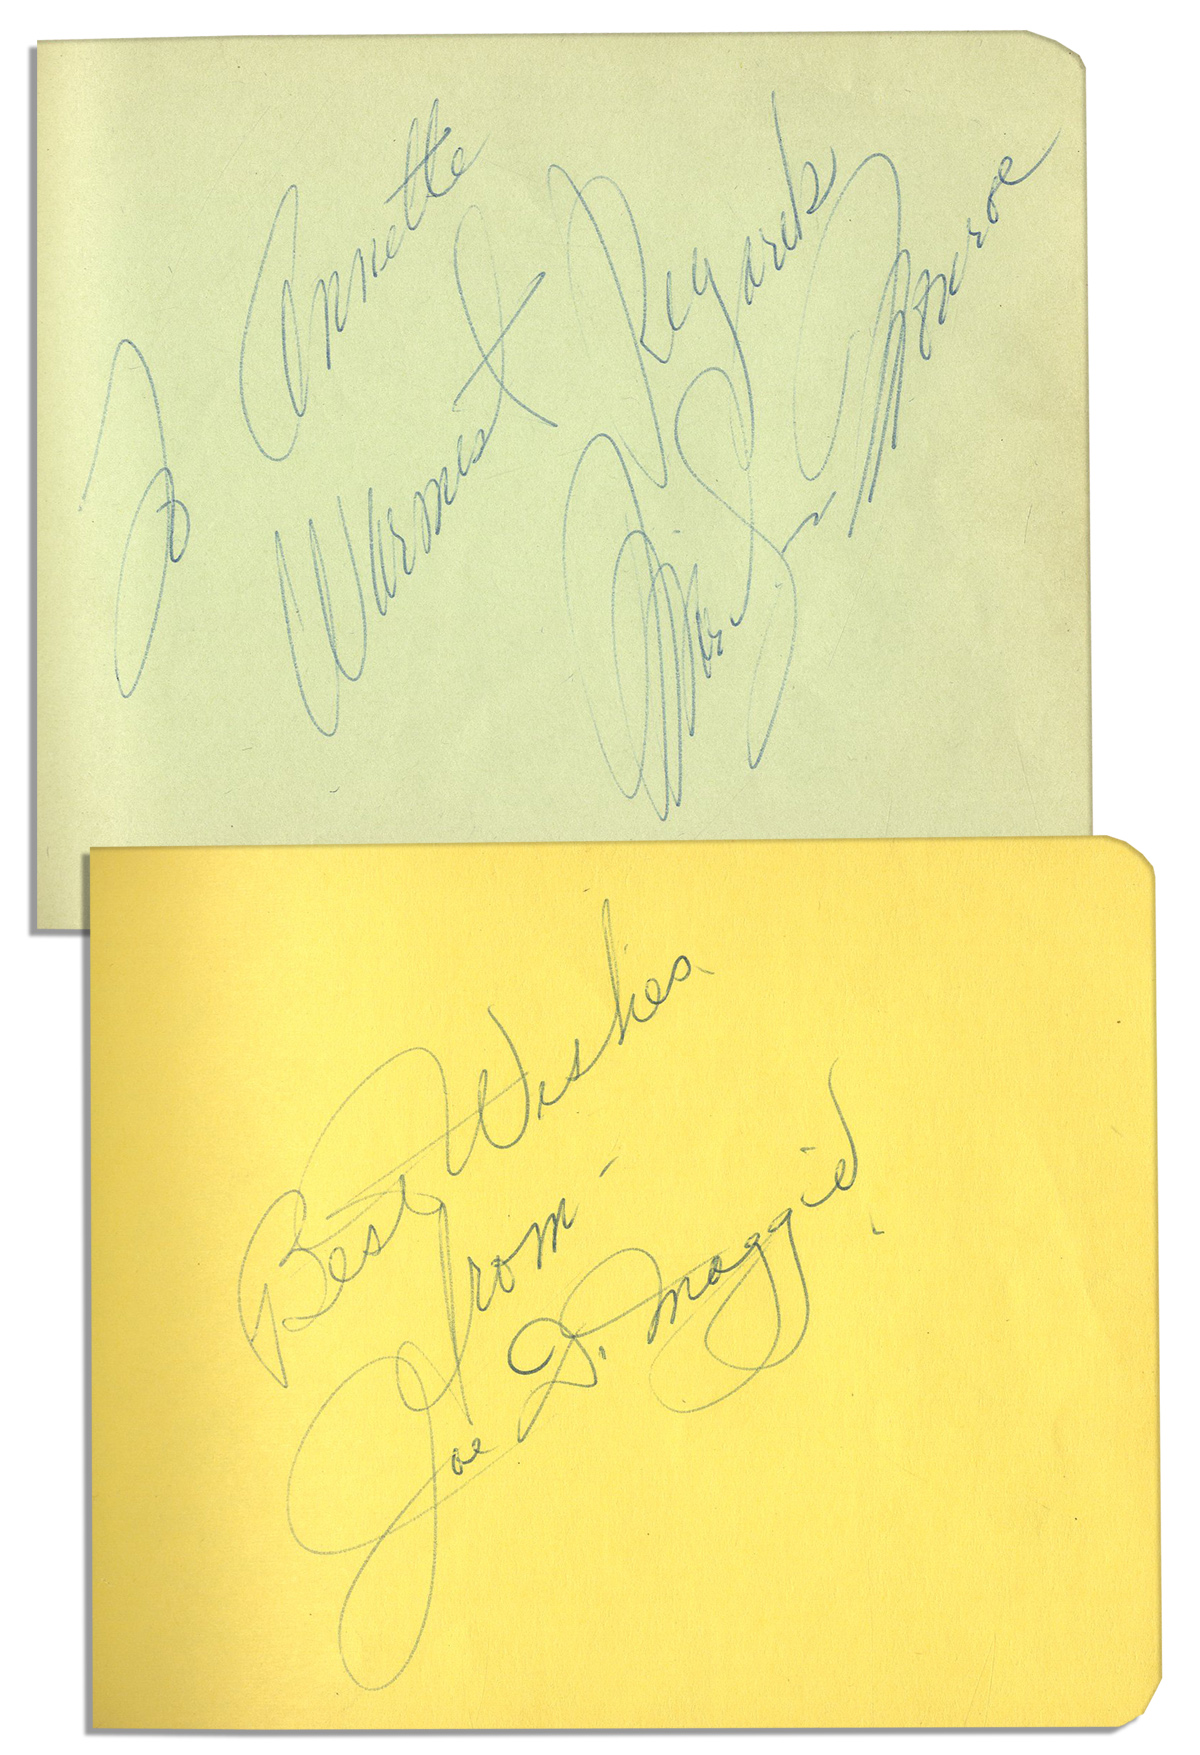 "Marilyn Monroe Autograph Beautiful Example of Marilyn Monroe's Signature in an Autograph Album -- ""To Annette / Warmest Regards / Marilyn Monroe"" -- Album Also Has Joe DiMaggio's Signature Together With Marilyn's"